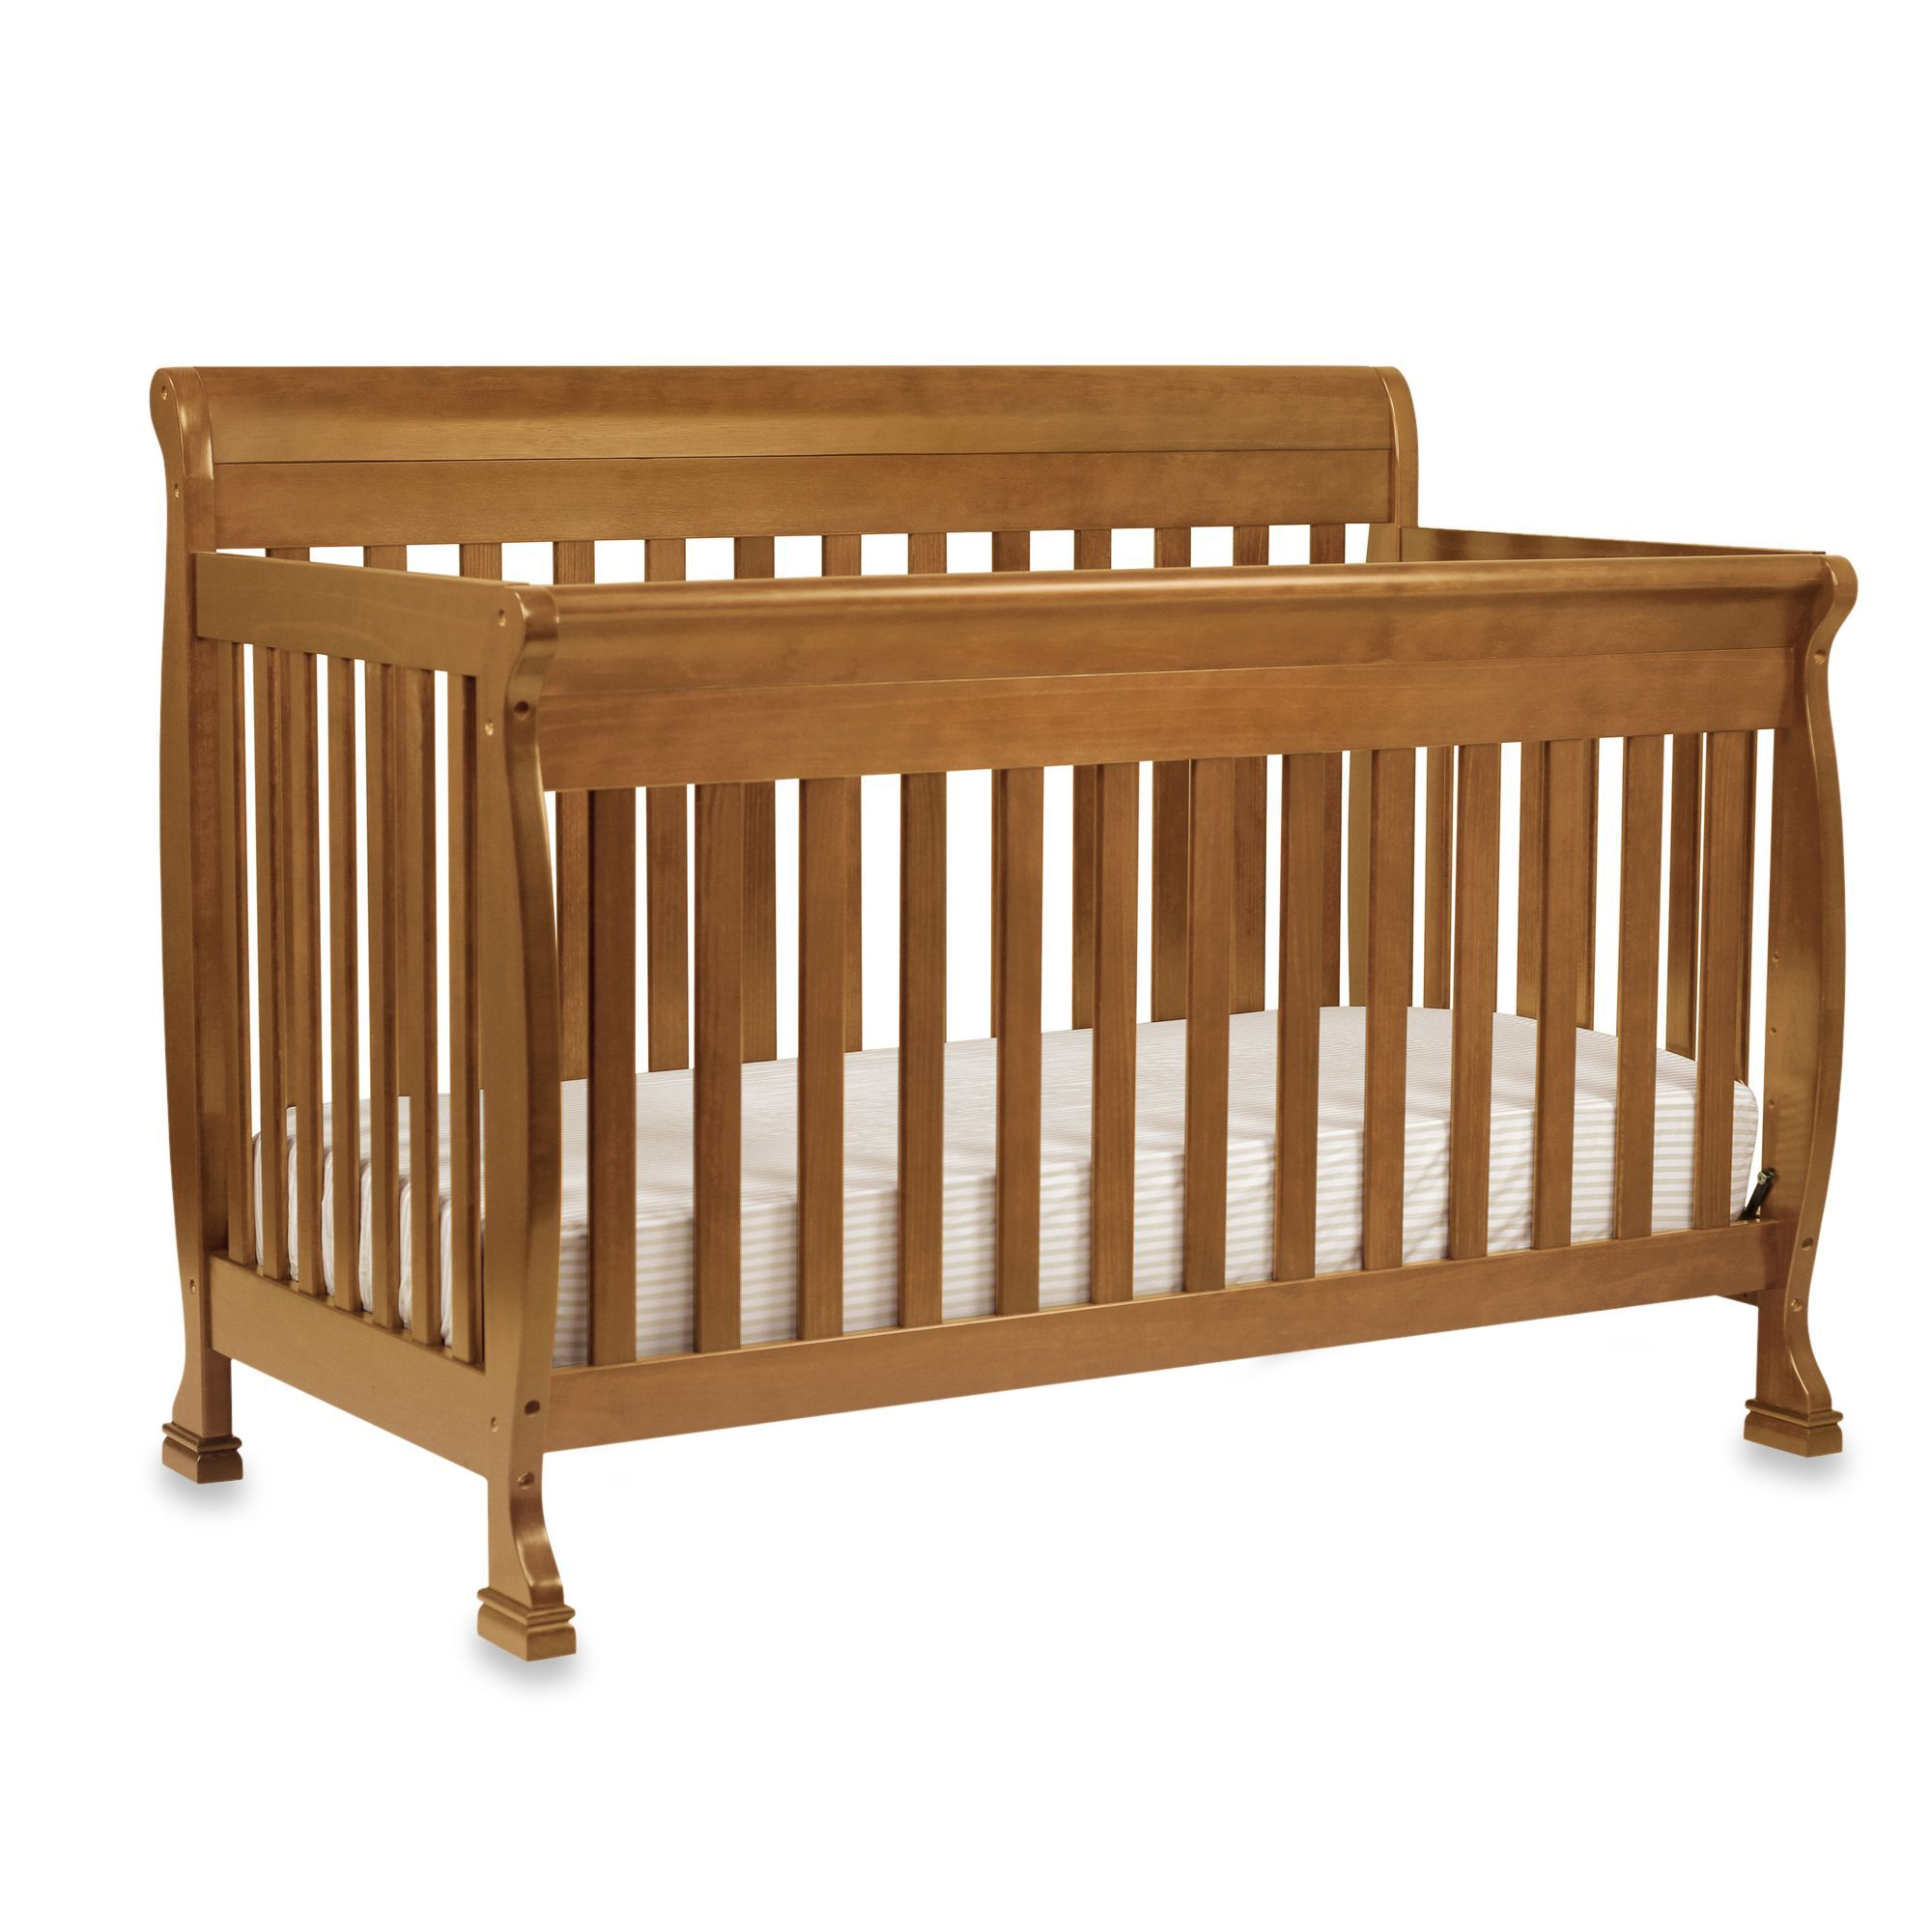 trends and kids u convertible toddler pic fascinating da for in shocking davinci rails lusso wood baby style crib white kalani inc vinci imgid jayden